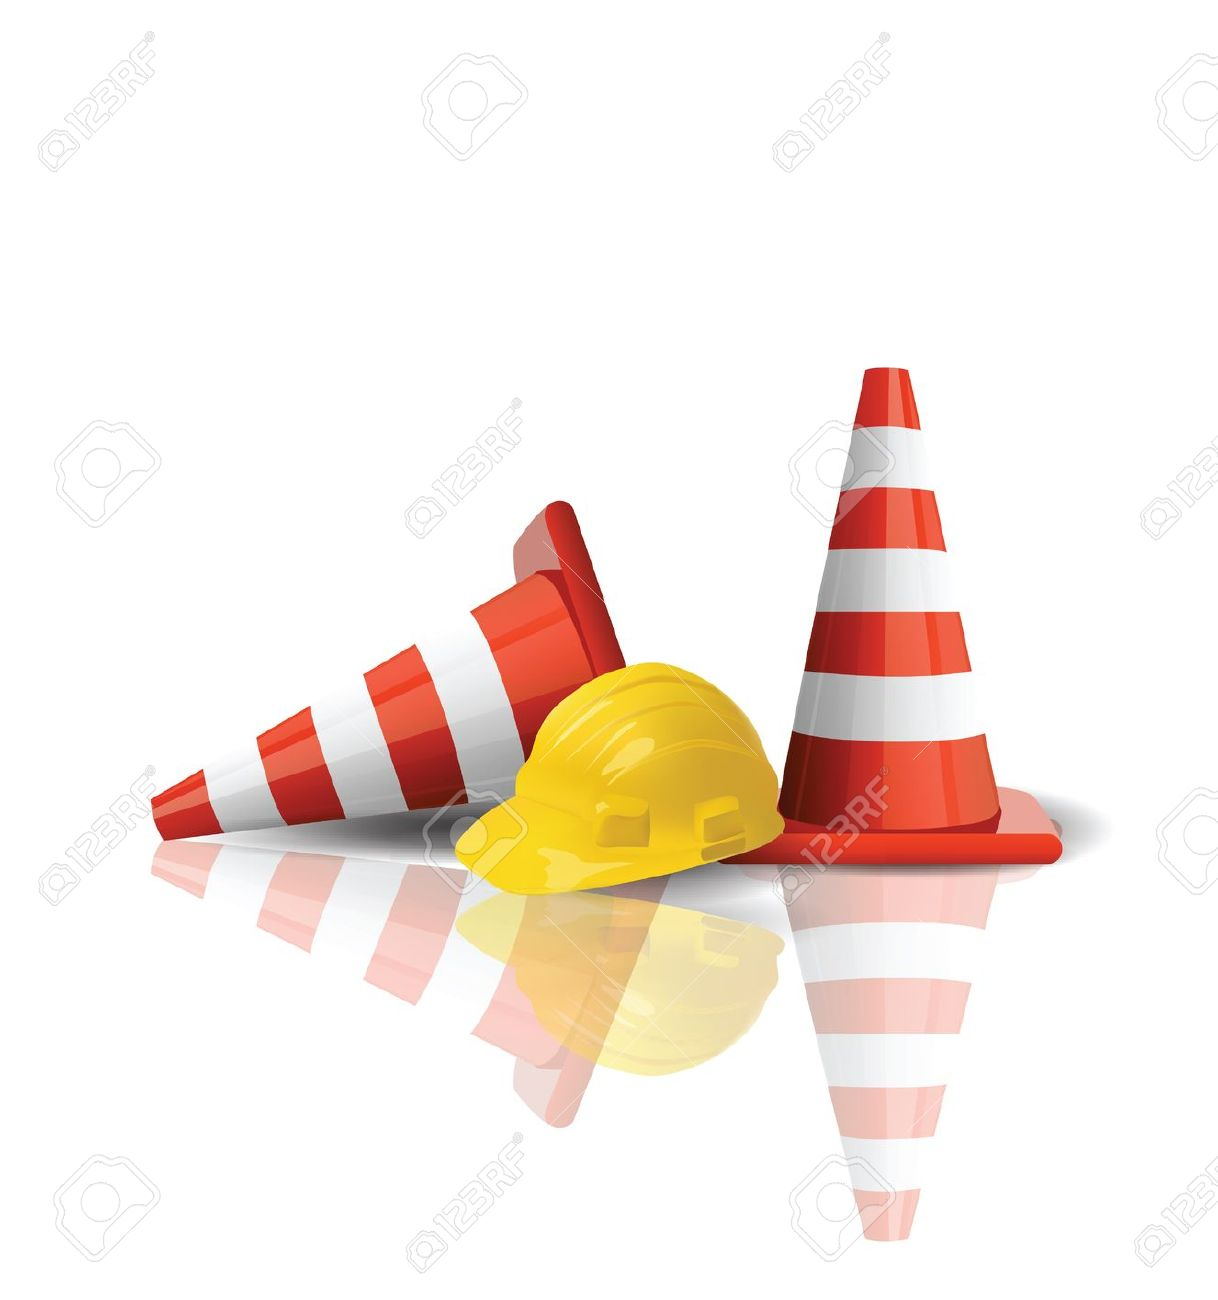 Road construction site clipart svg Hard Cap With Traffic Cones Isolated Royalty Free Cliparts ... svg